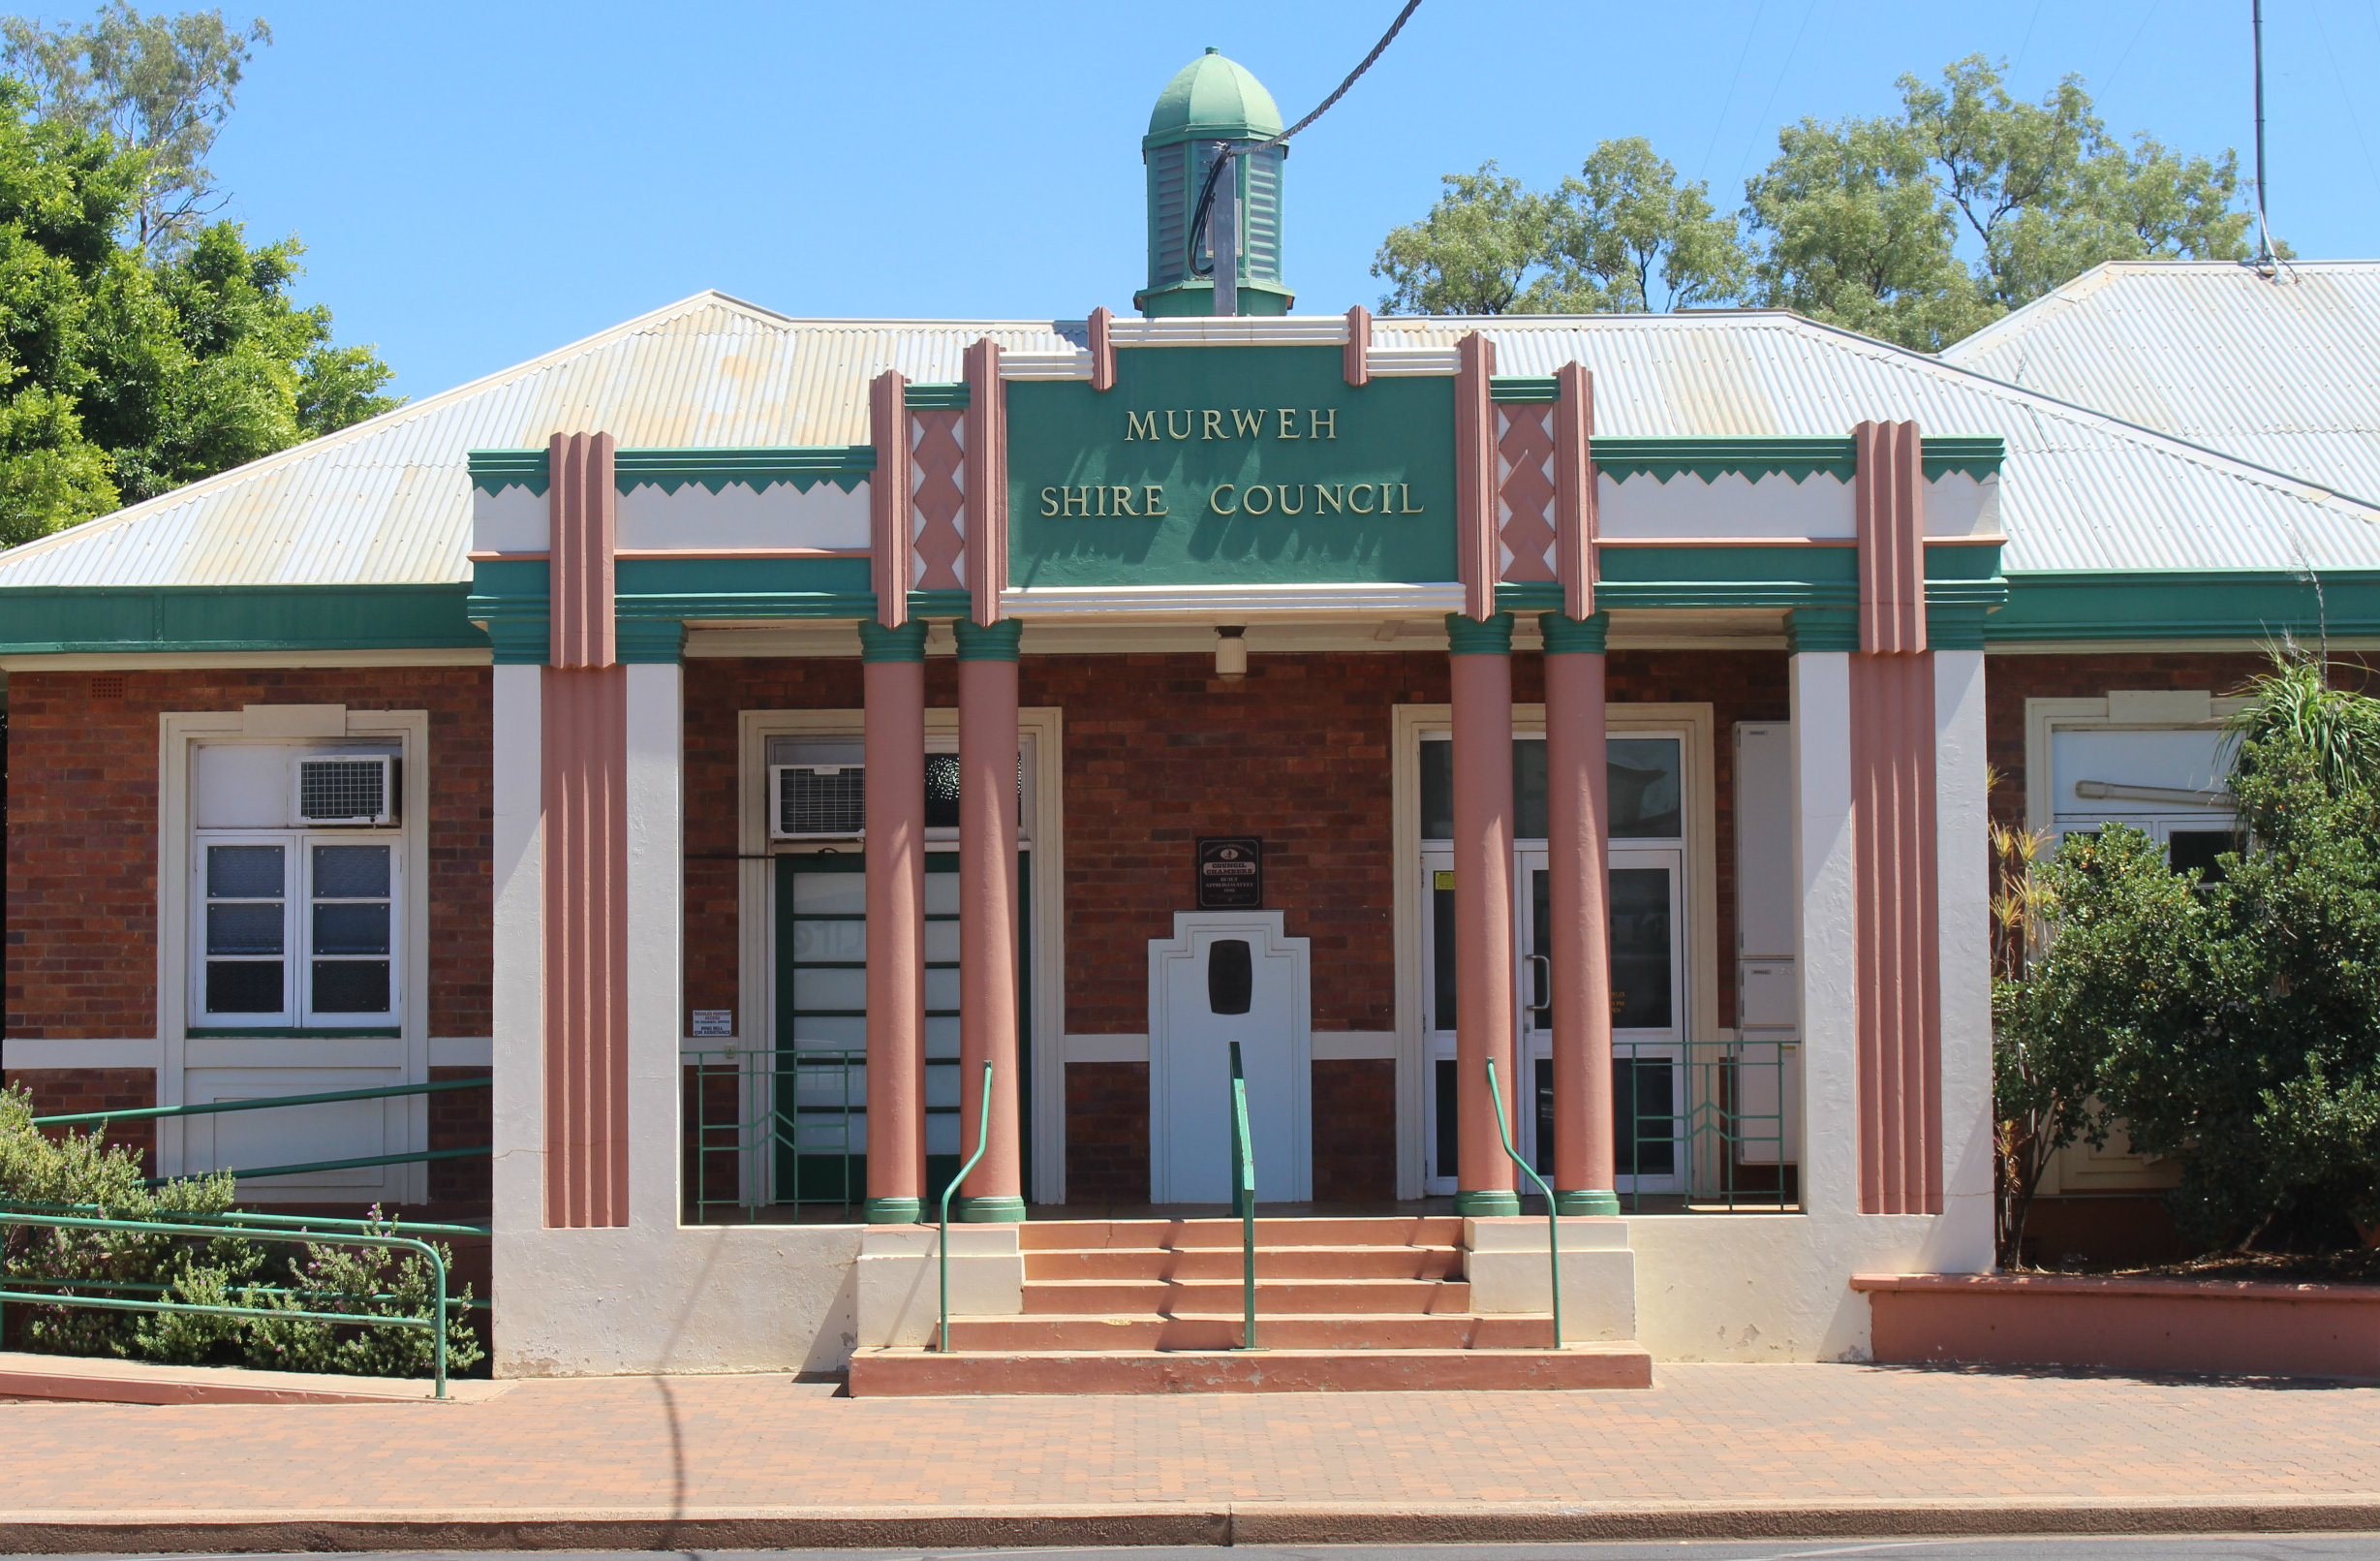 Murweh Shire Council Bulilding